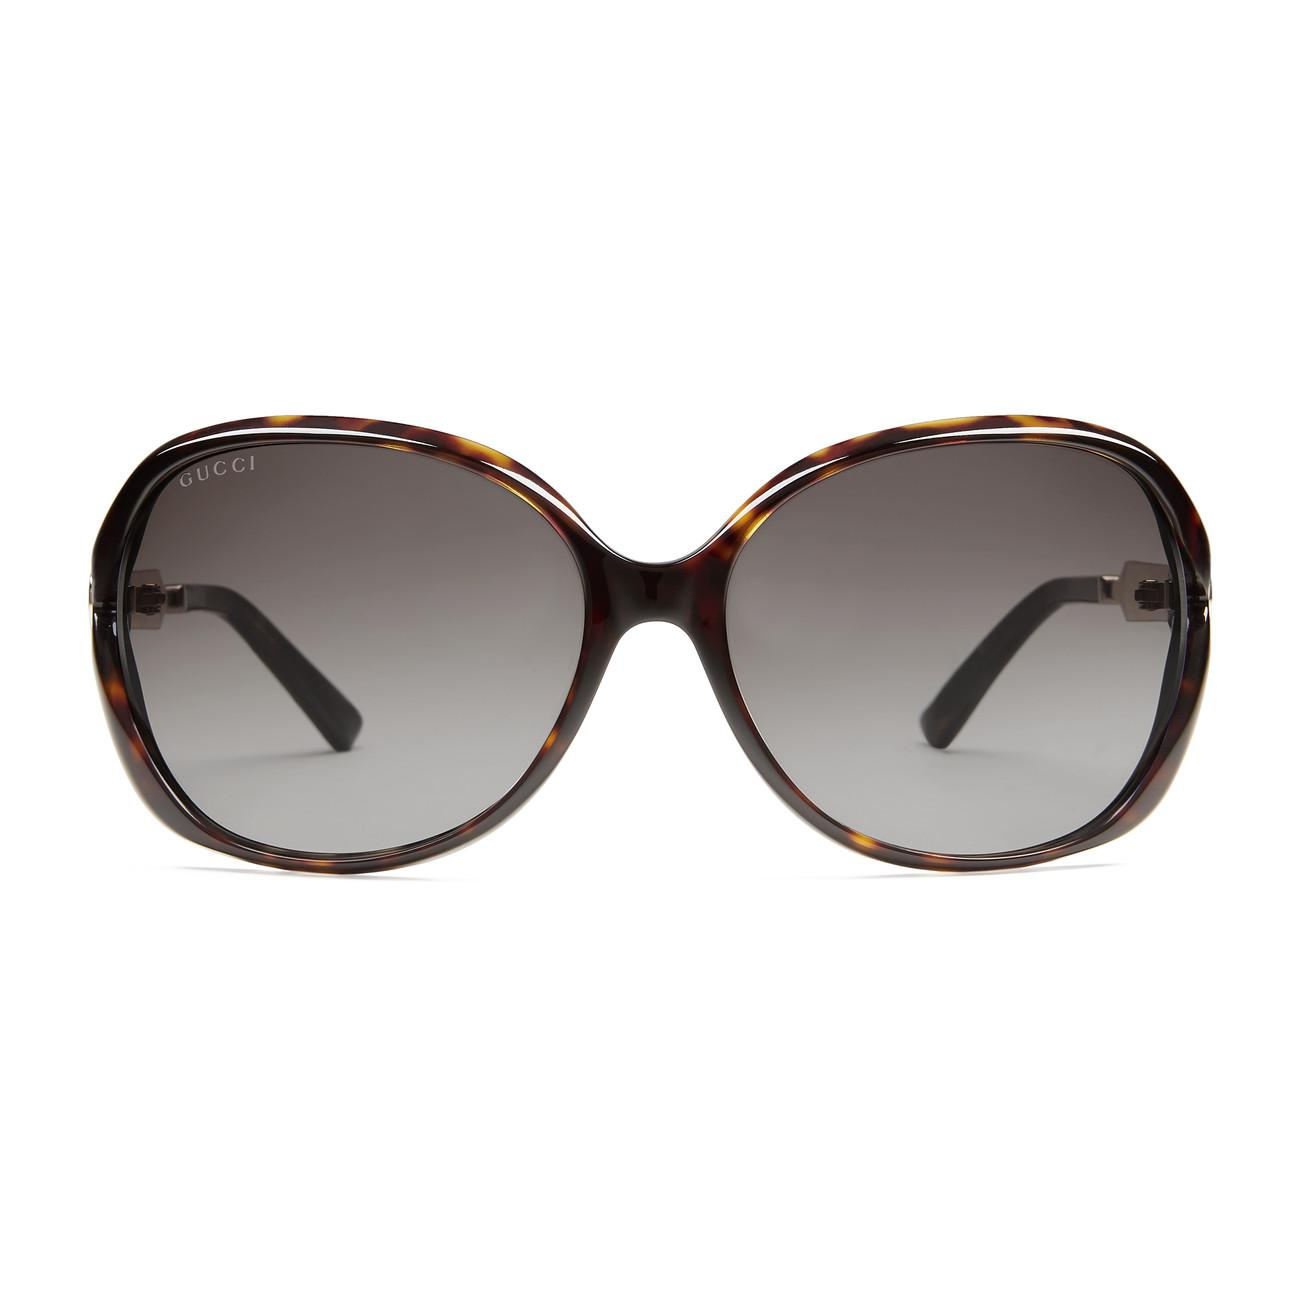 9756ead970 Gucci - Brown Oversize Round-frame Acetate And Metal Sunglasses - Lyst.  View fullscreen